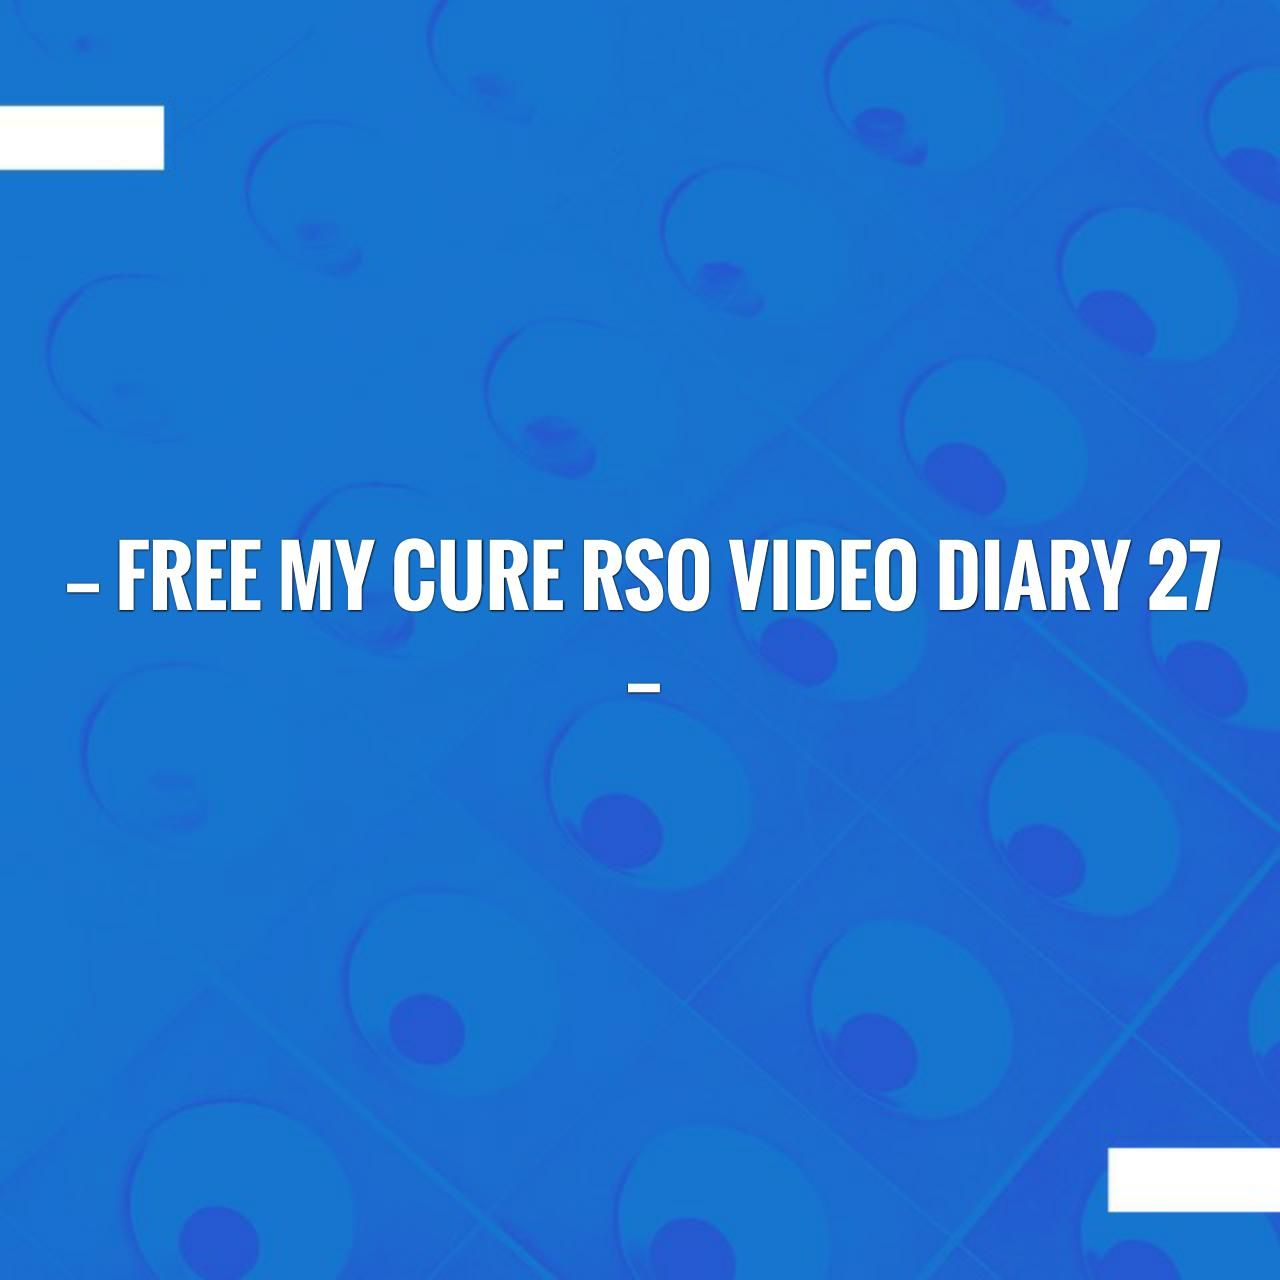 Just In Free My Cure Rso Video Diary 27 Https Freemycure